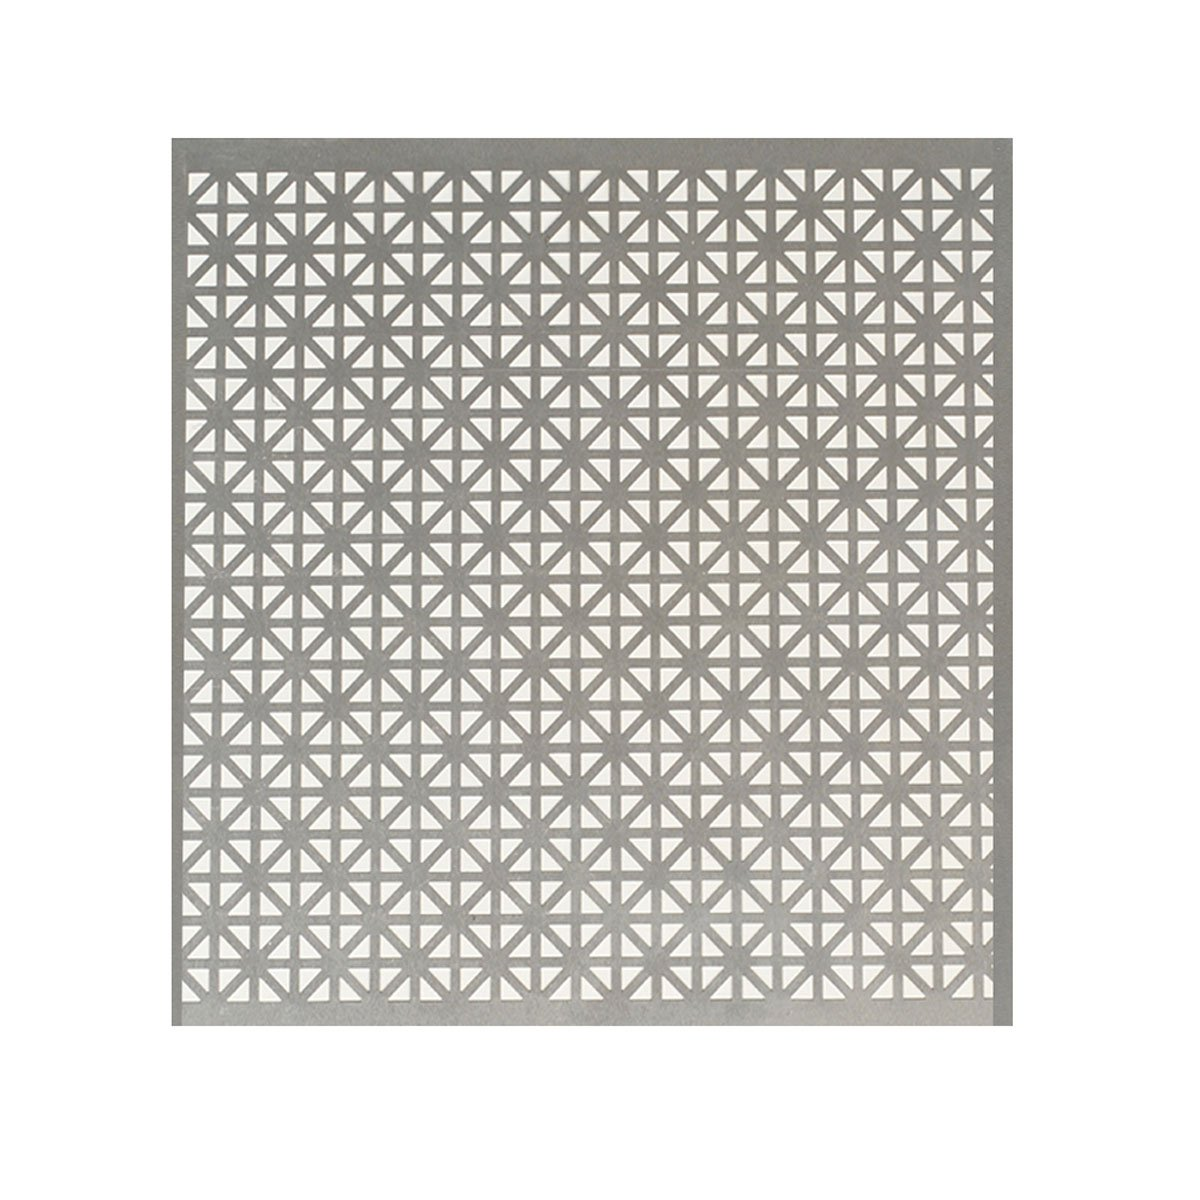 M-D Building Products 56008 020-Inch Thick 1 2-Feet Union Jack Aluminum Sheet, Mill